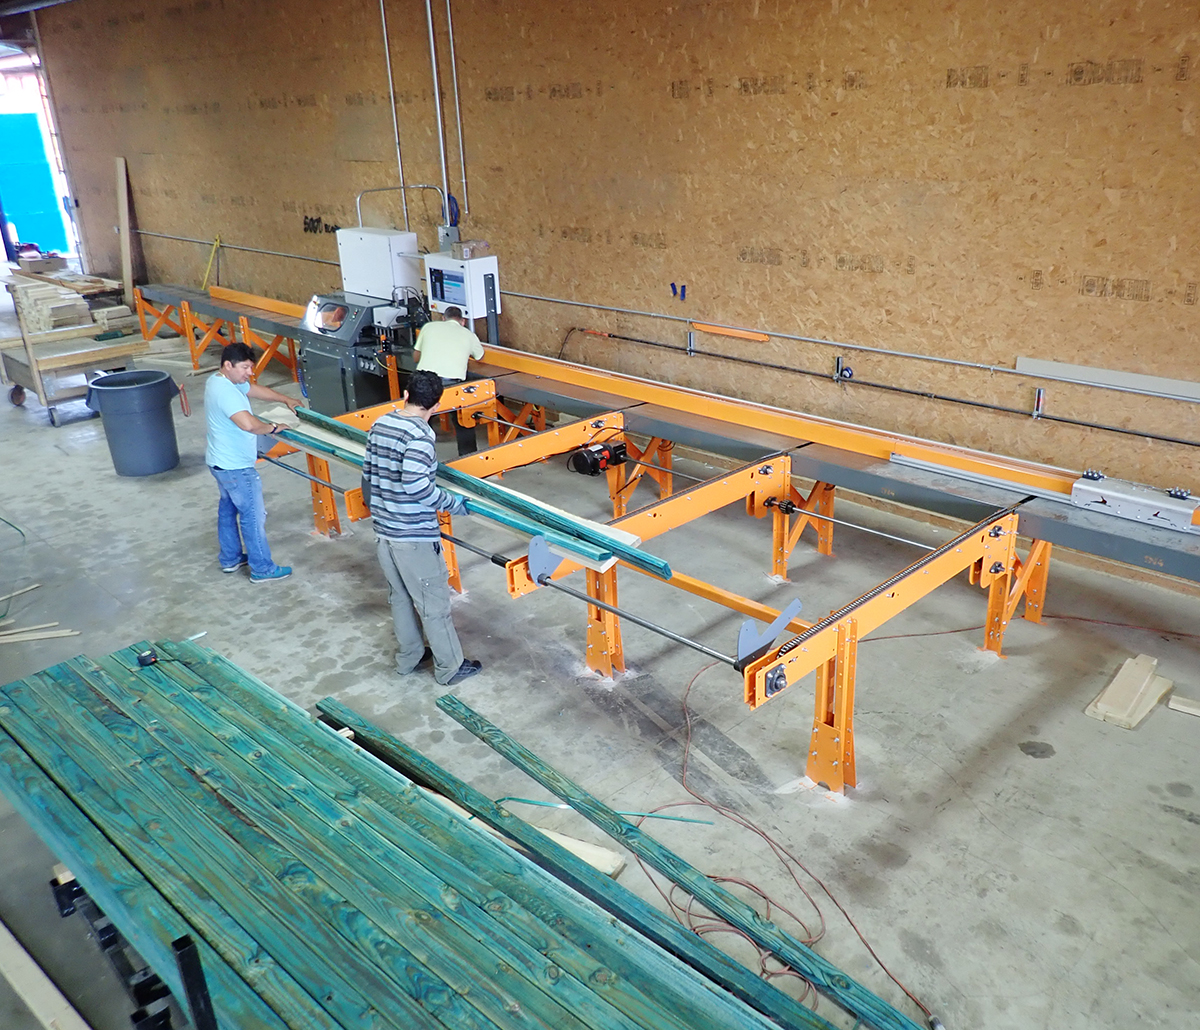 MiTek Hornet Saw Automated Solutions - Three men working with a Hornet Saw in a shop